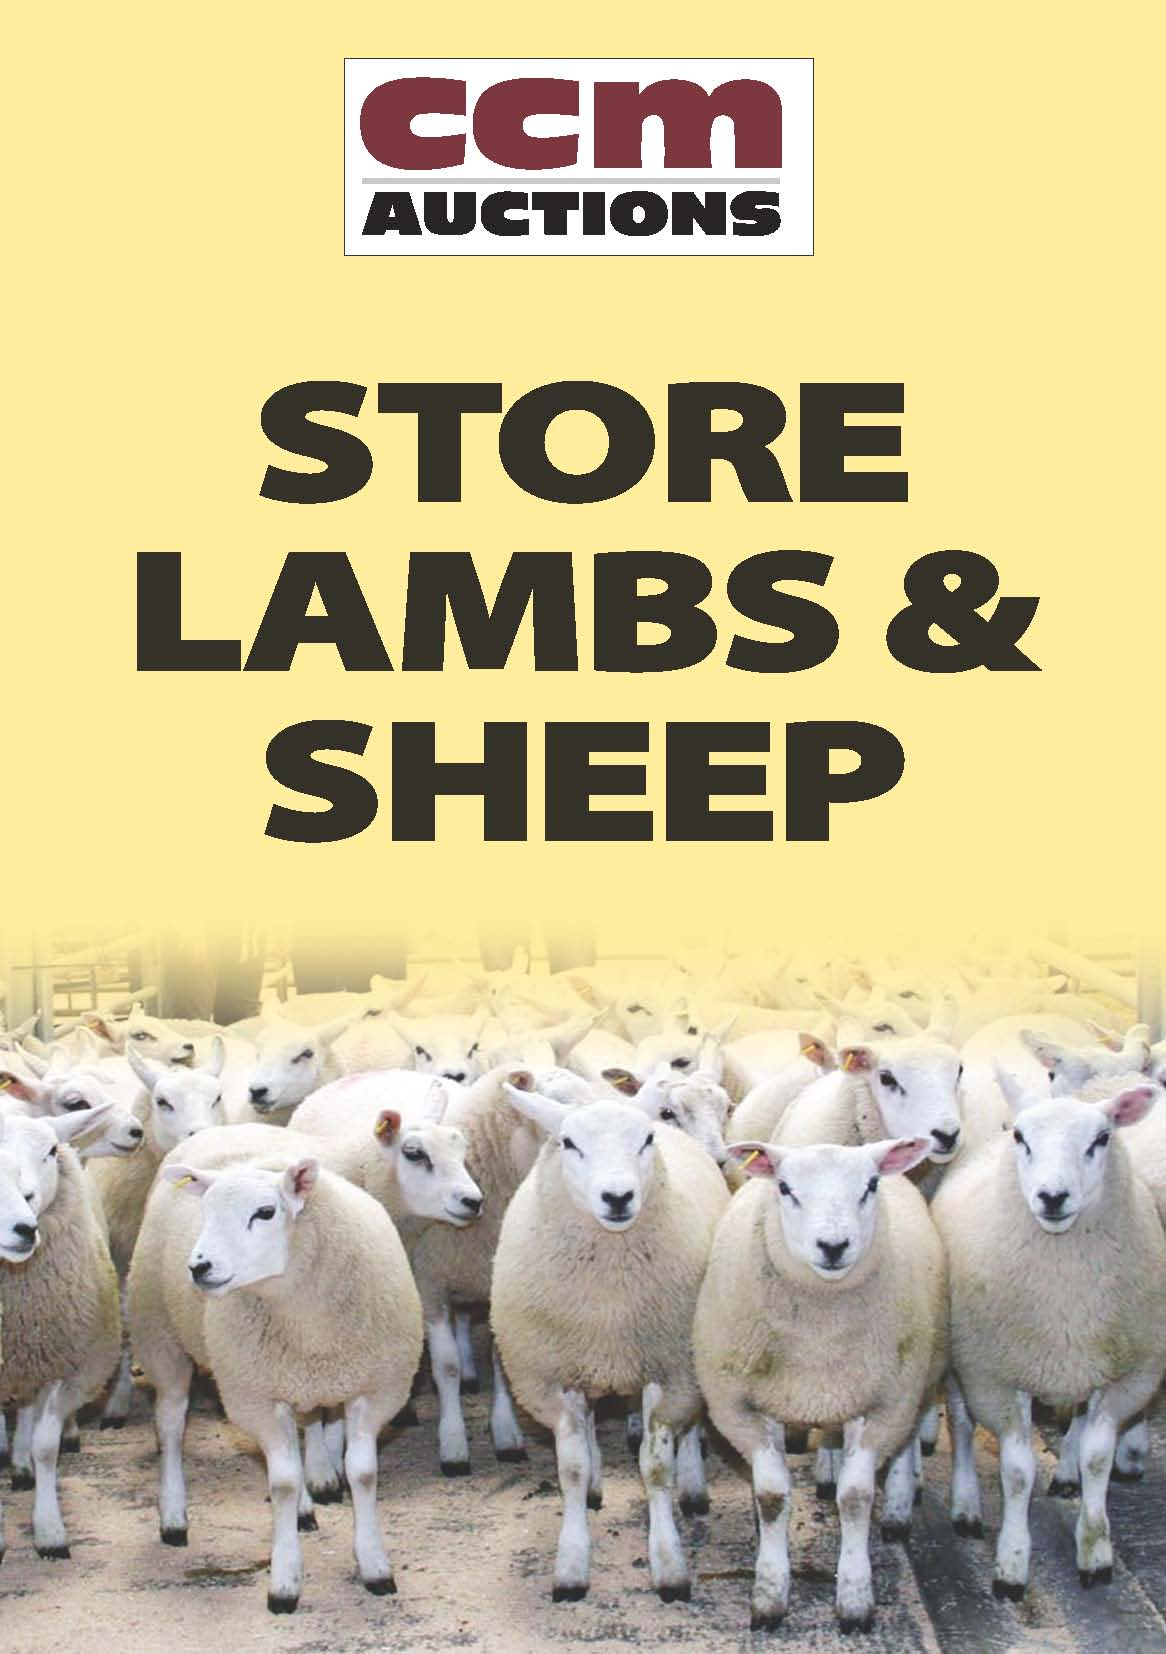 STORE LAMBS - WEDNESDAY 20TH AUGUST 2014